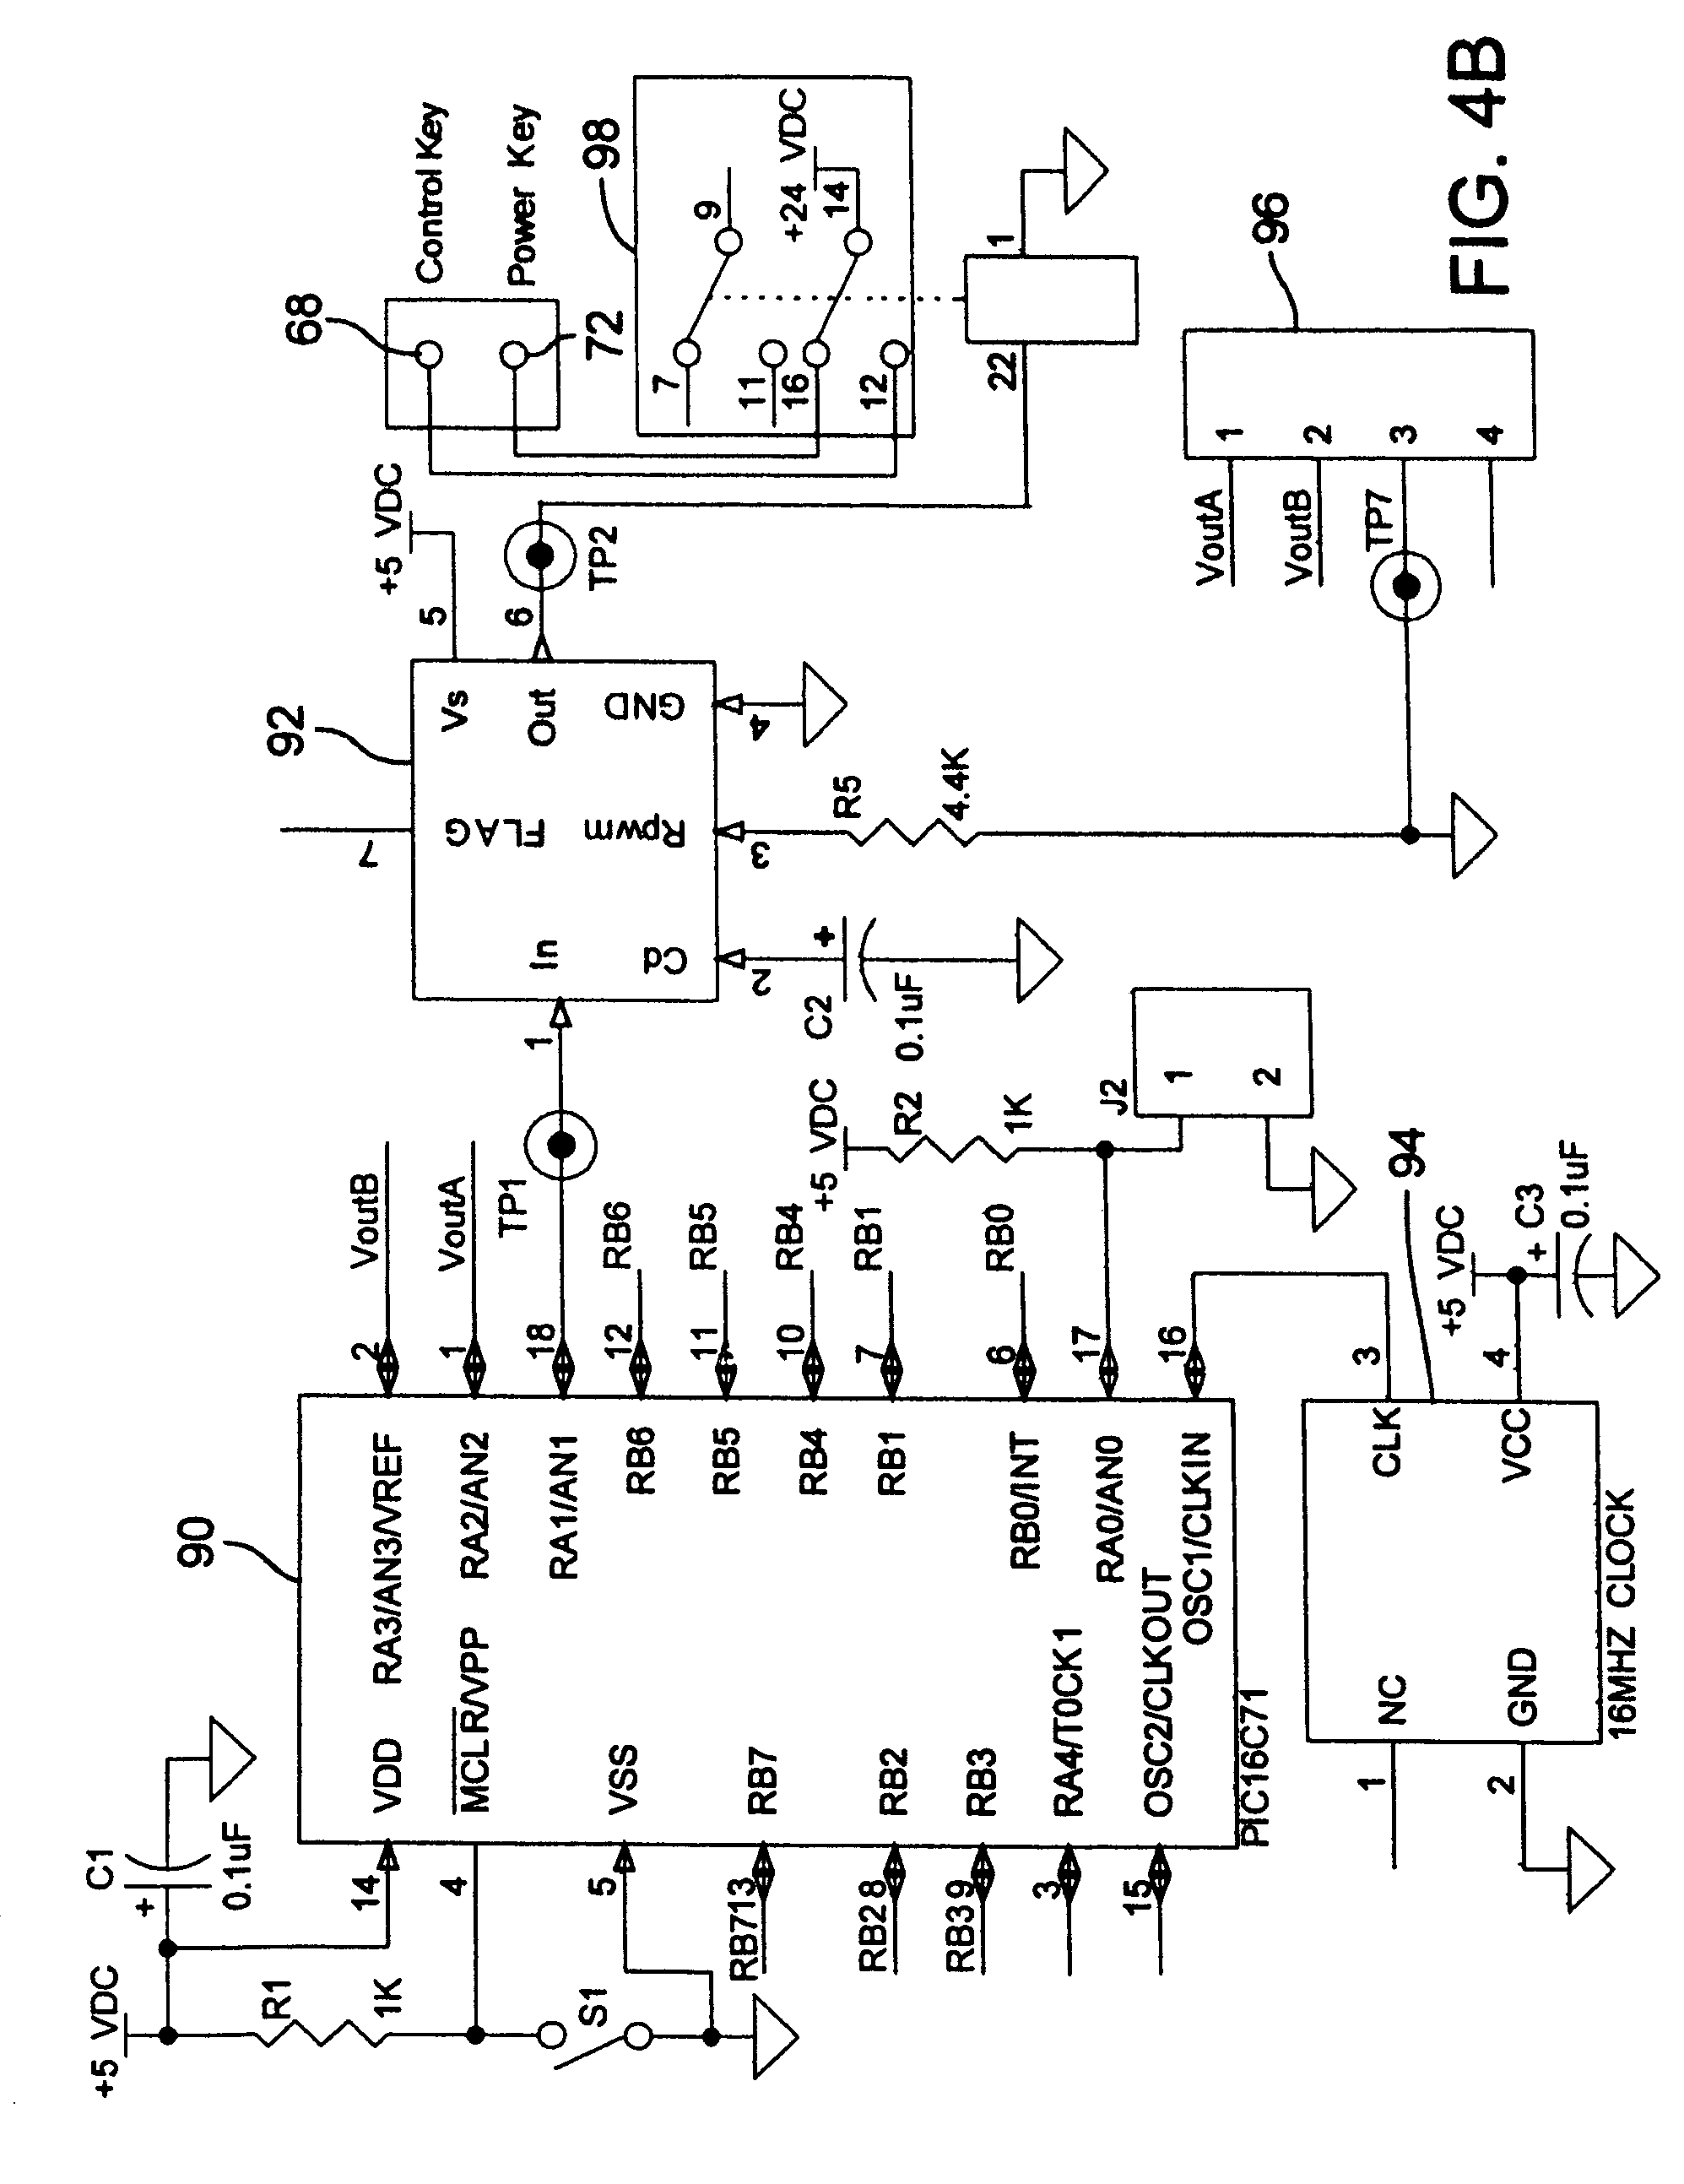 fortress interlock wiring diagram auto electrical wiring diagram 2002 F250 Trailer Wiring Diagram fortress interlock wiring diagram 33 wiring diagram